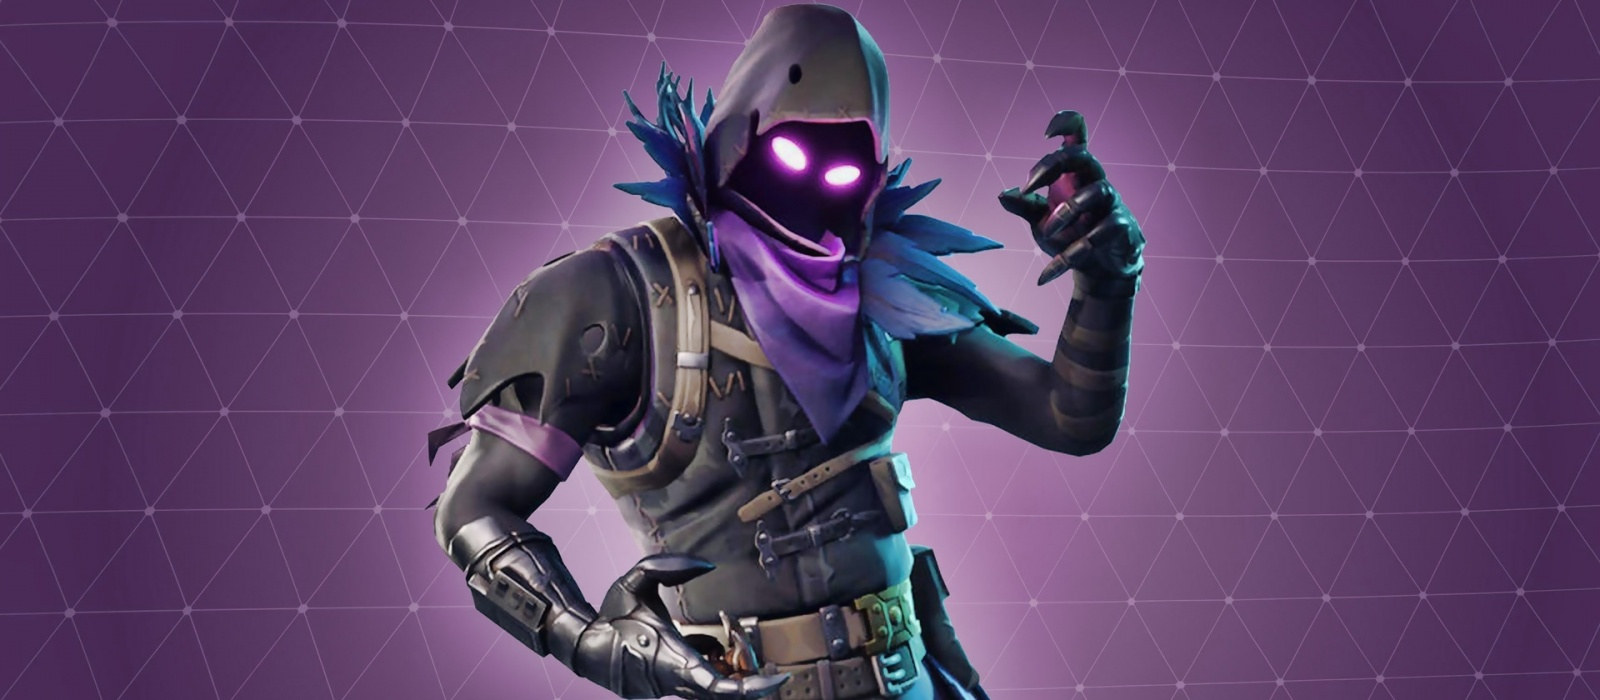 How to find the Midas Shadow boss in Fortnite